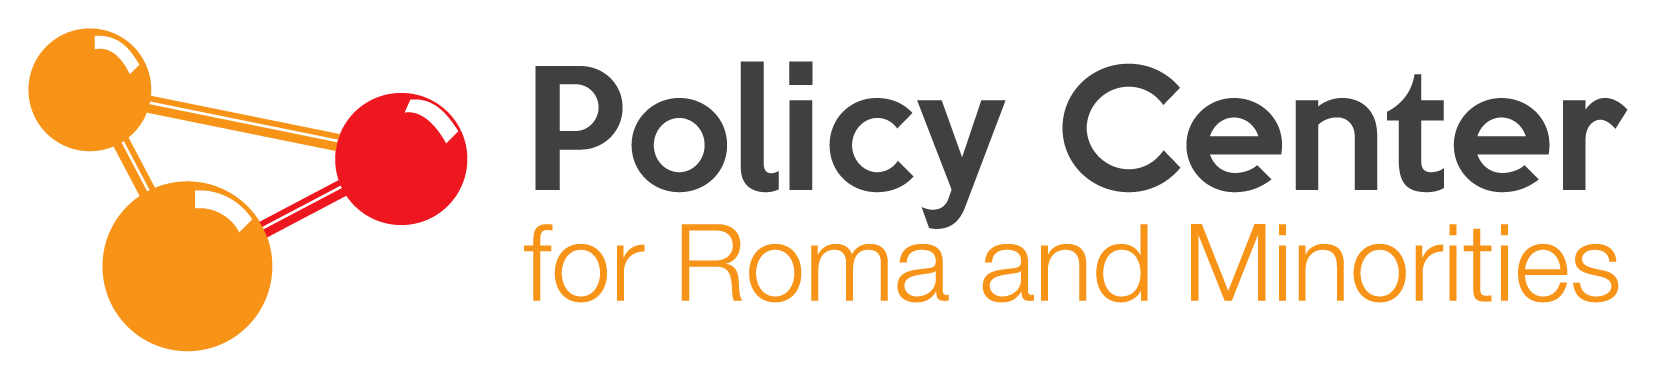 Policy Center for Roma and Minorities logo